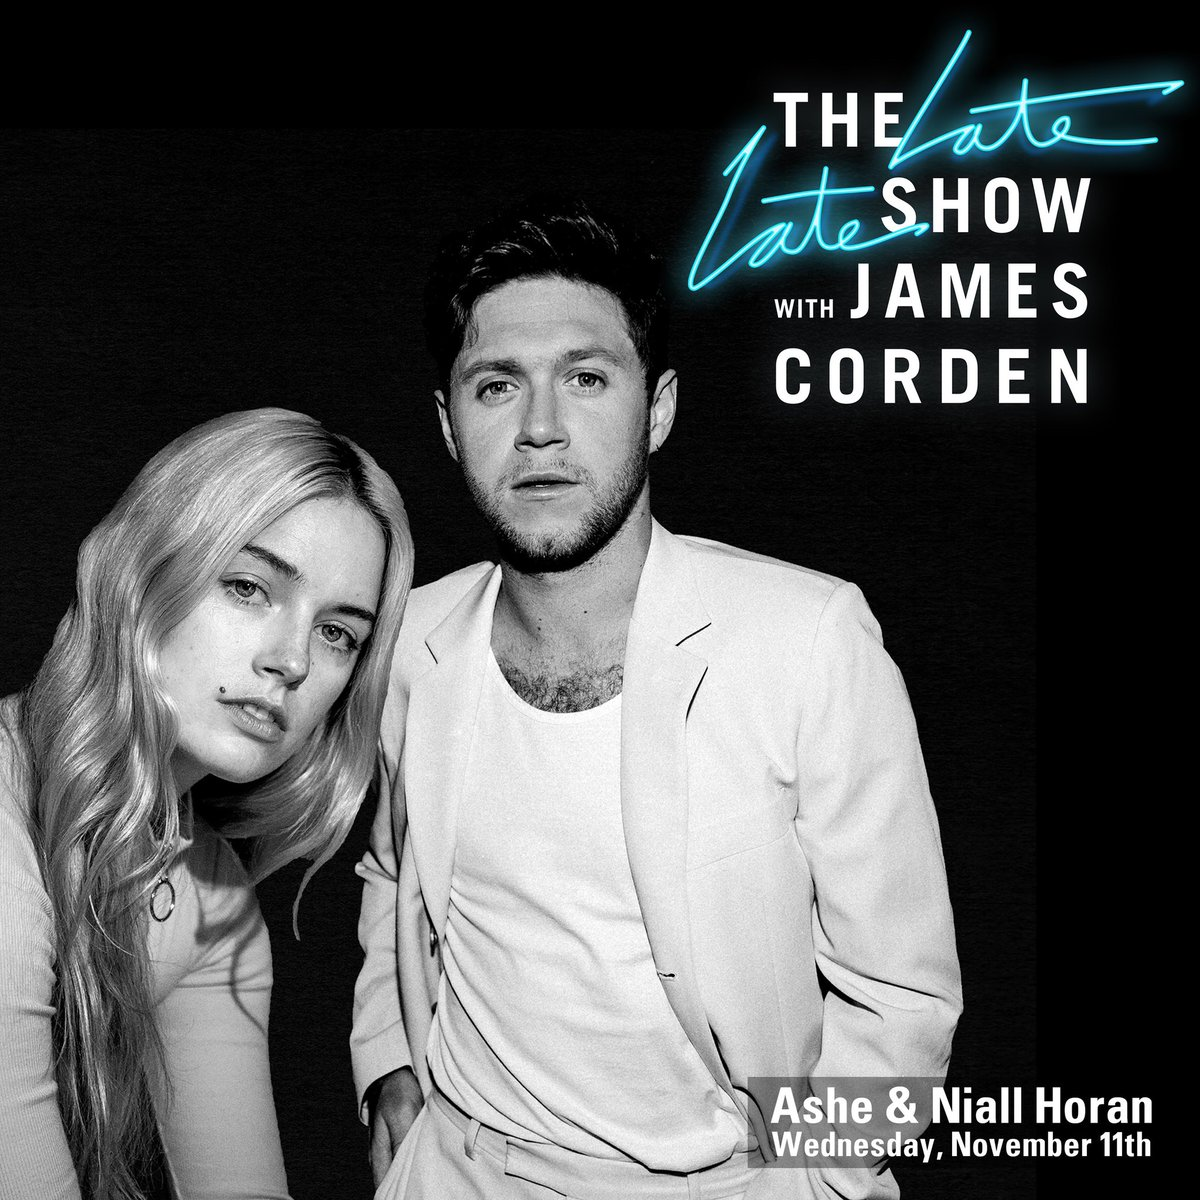 as if 2020 couldn't get any stranger!! i'm absolutely besides myself to announce my first ever late night tv performance will be on the @latelateshow with @JKCorden with none other than my sweet friend @NiallOfficial this nov 11th! 😅🥶🥵🥳 #latelateshow